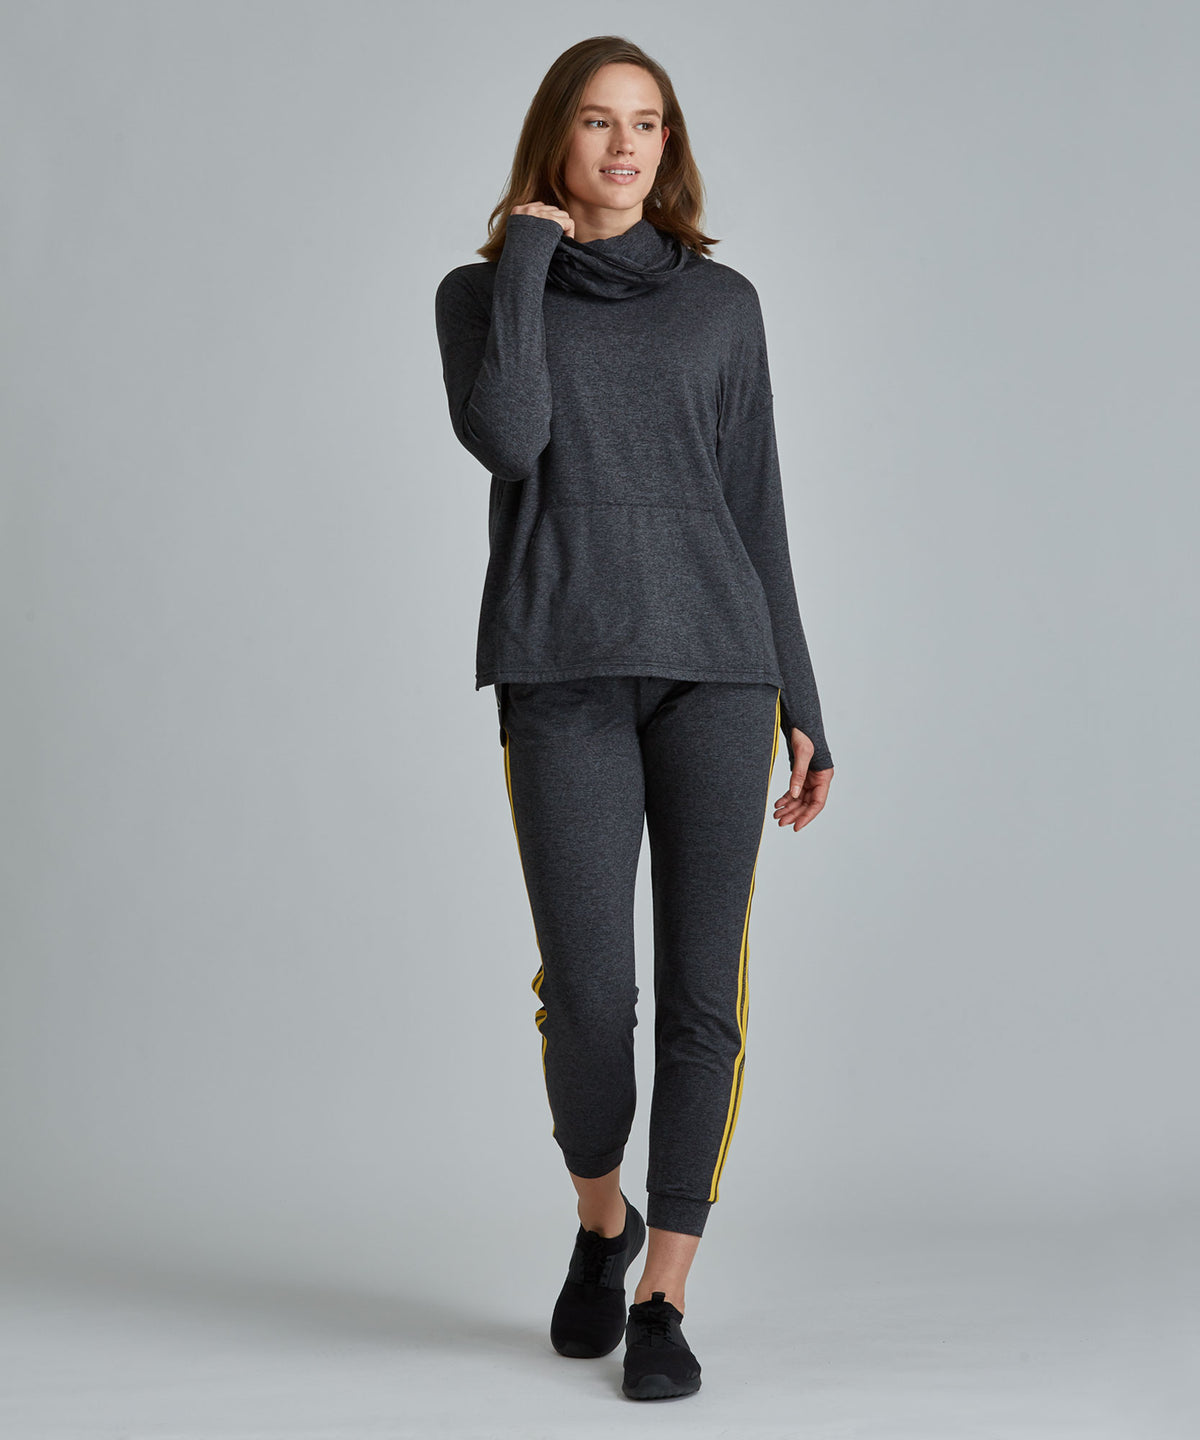 Savasana Hoodie - Charcoal Heather Charcoal Heather Savasana Hoodie - Women's Activewear Sweatshirt by PRISMSPORT